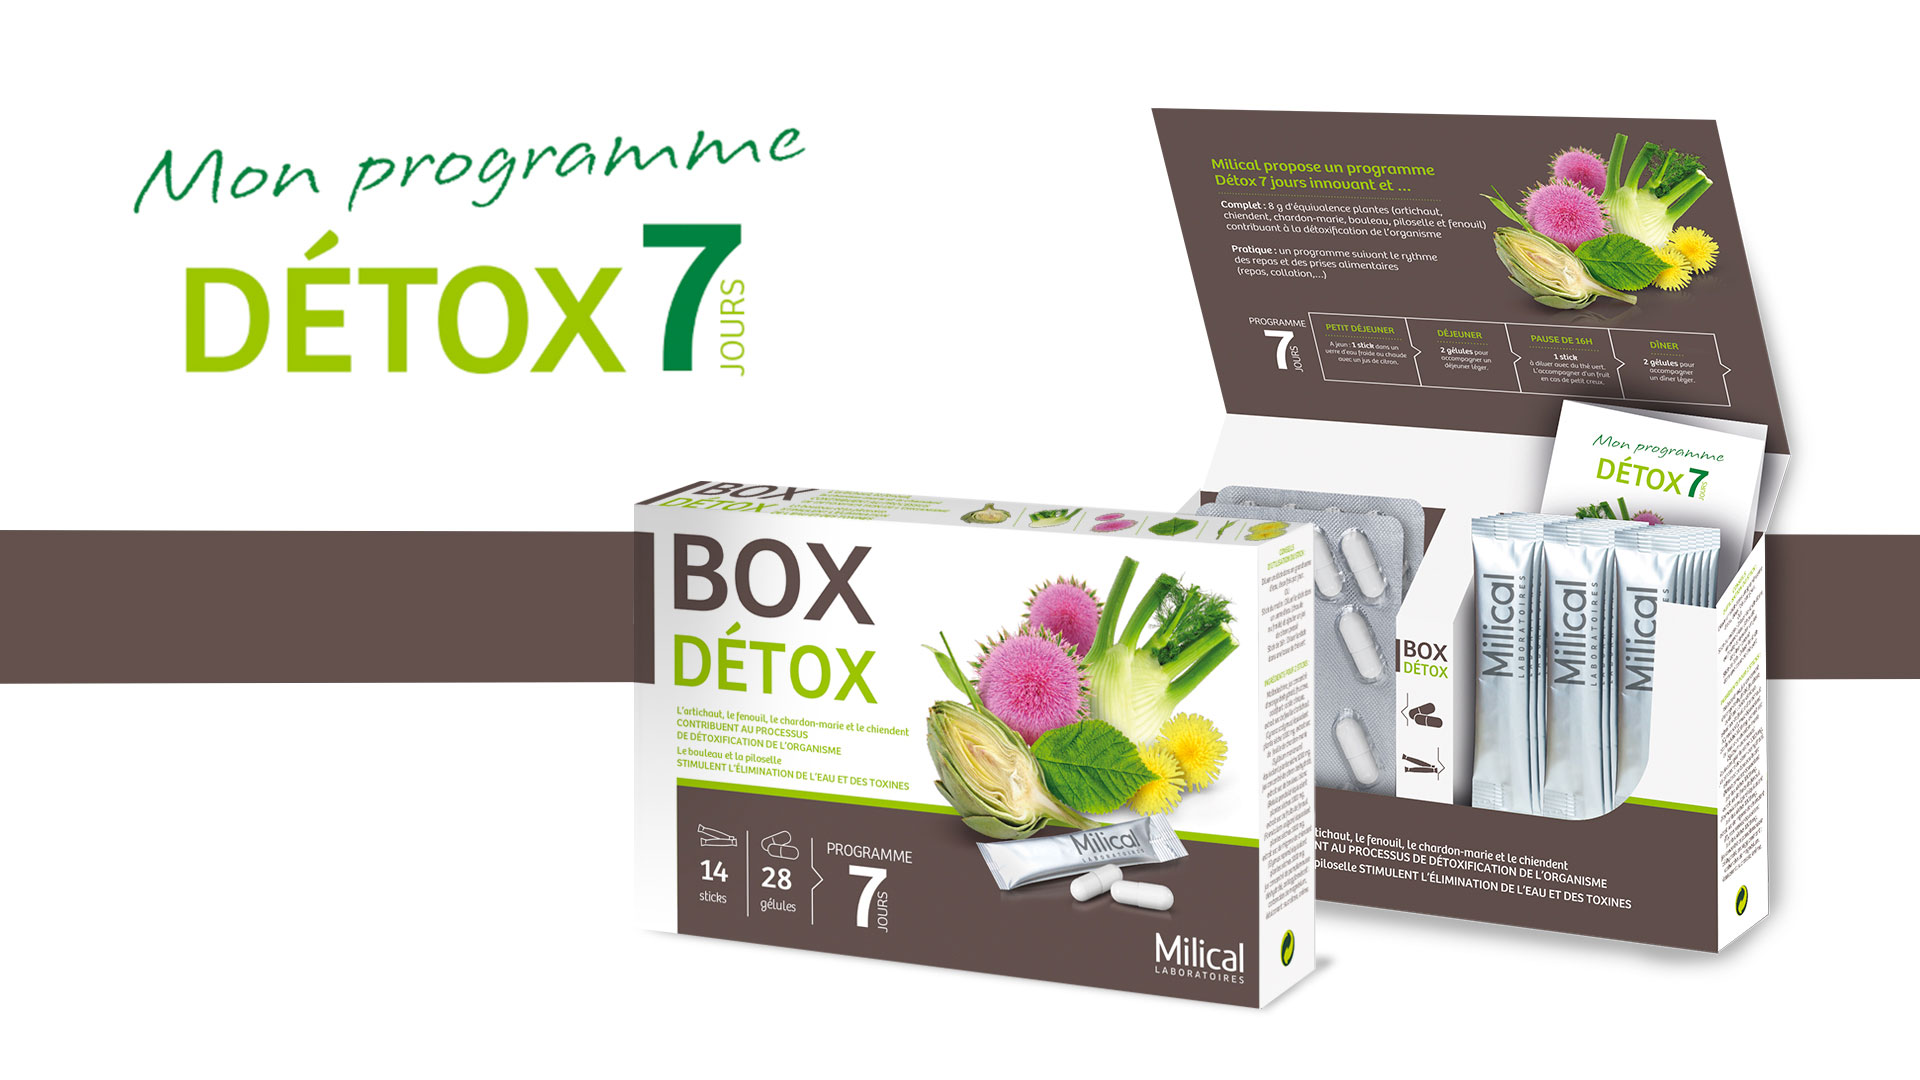 milical box detox cartoon.design